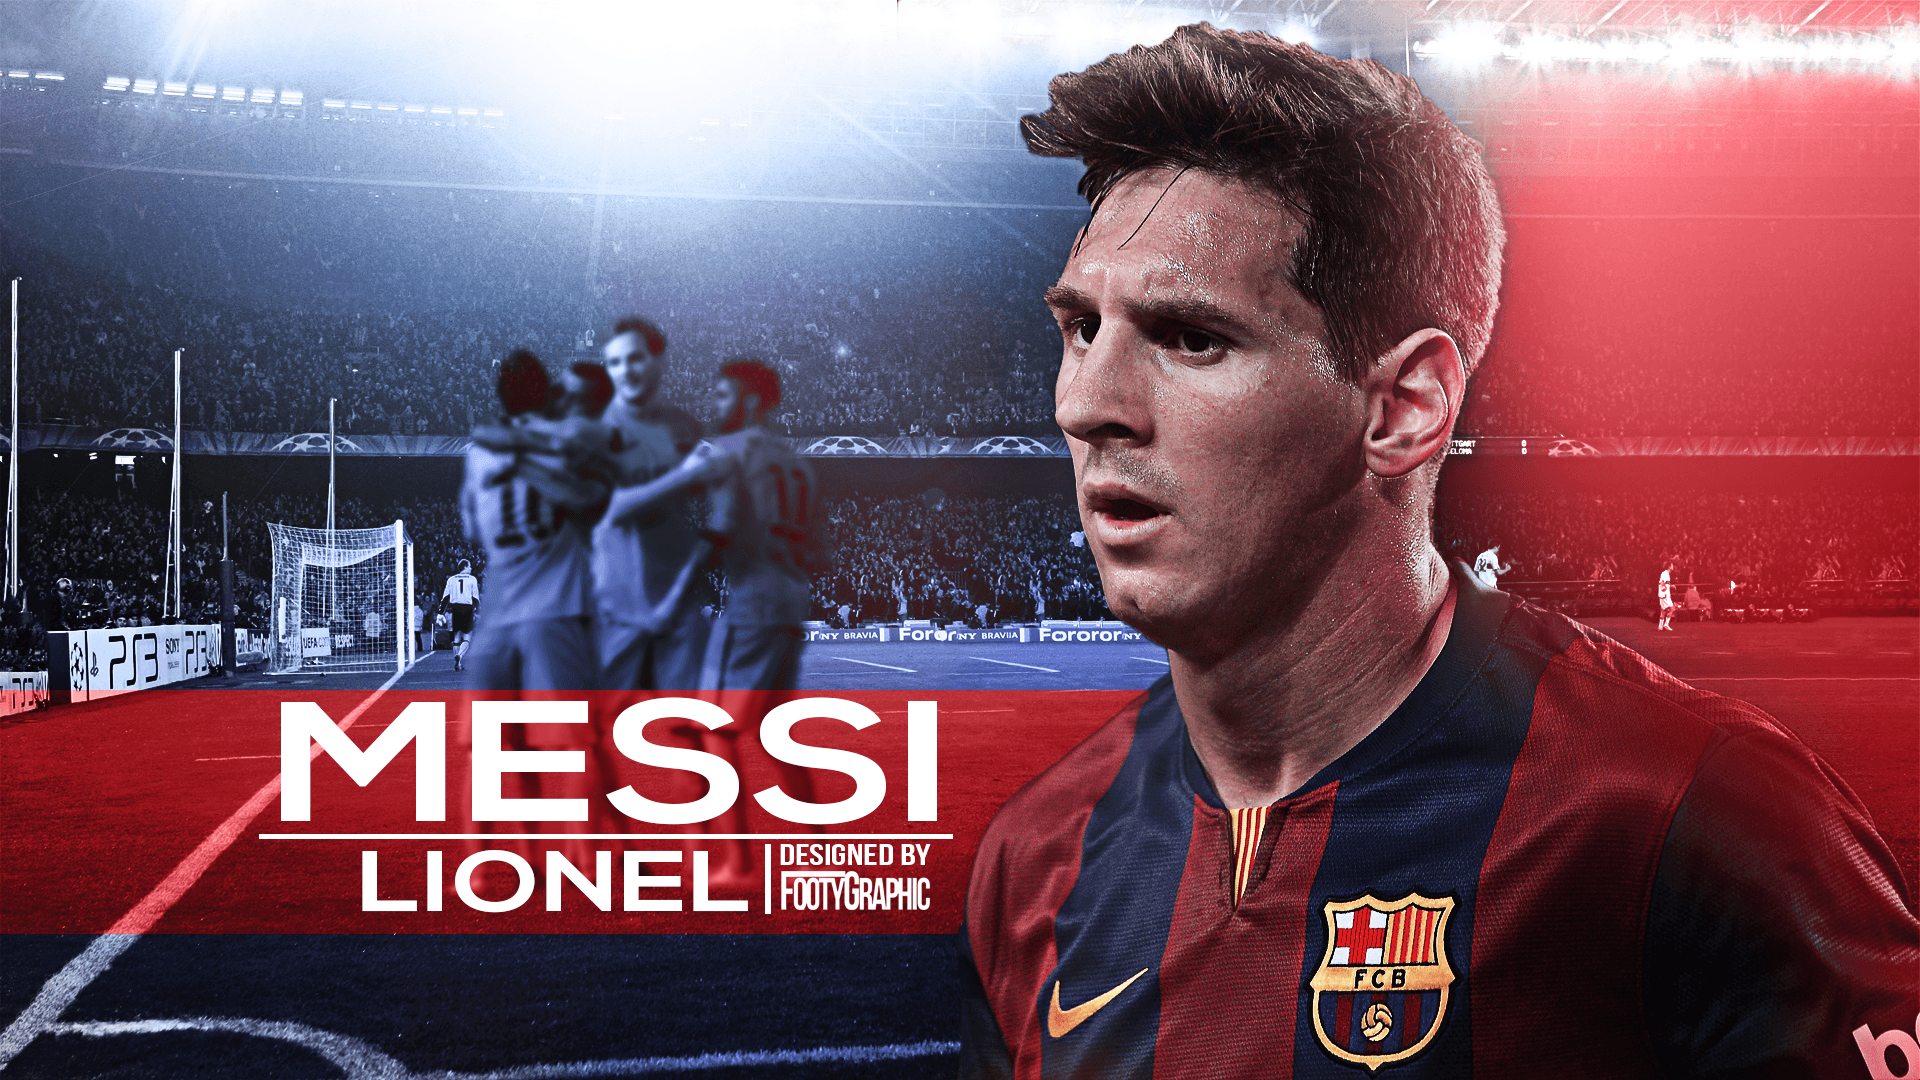 Lionel Messi Wallpapers, Pictures, Image